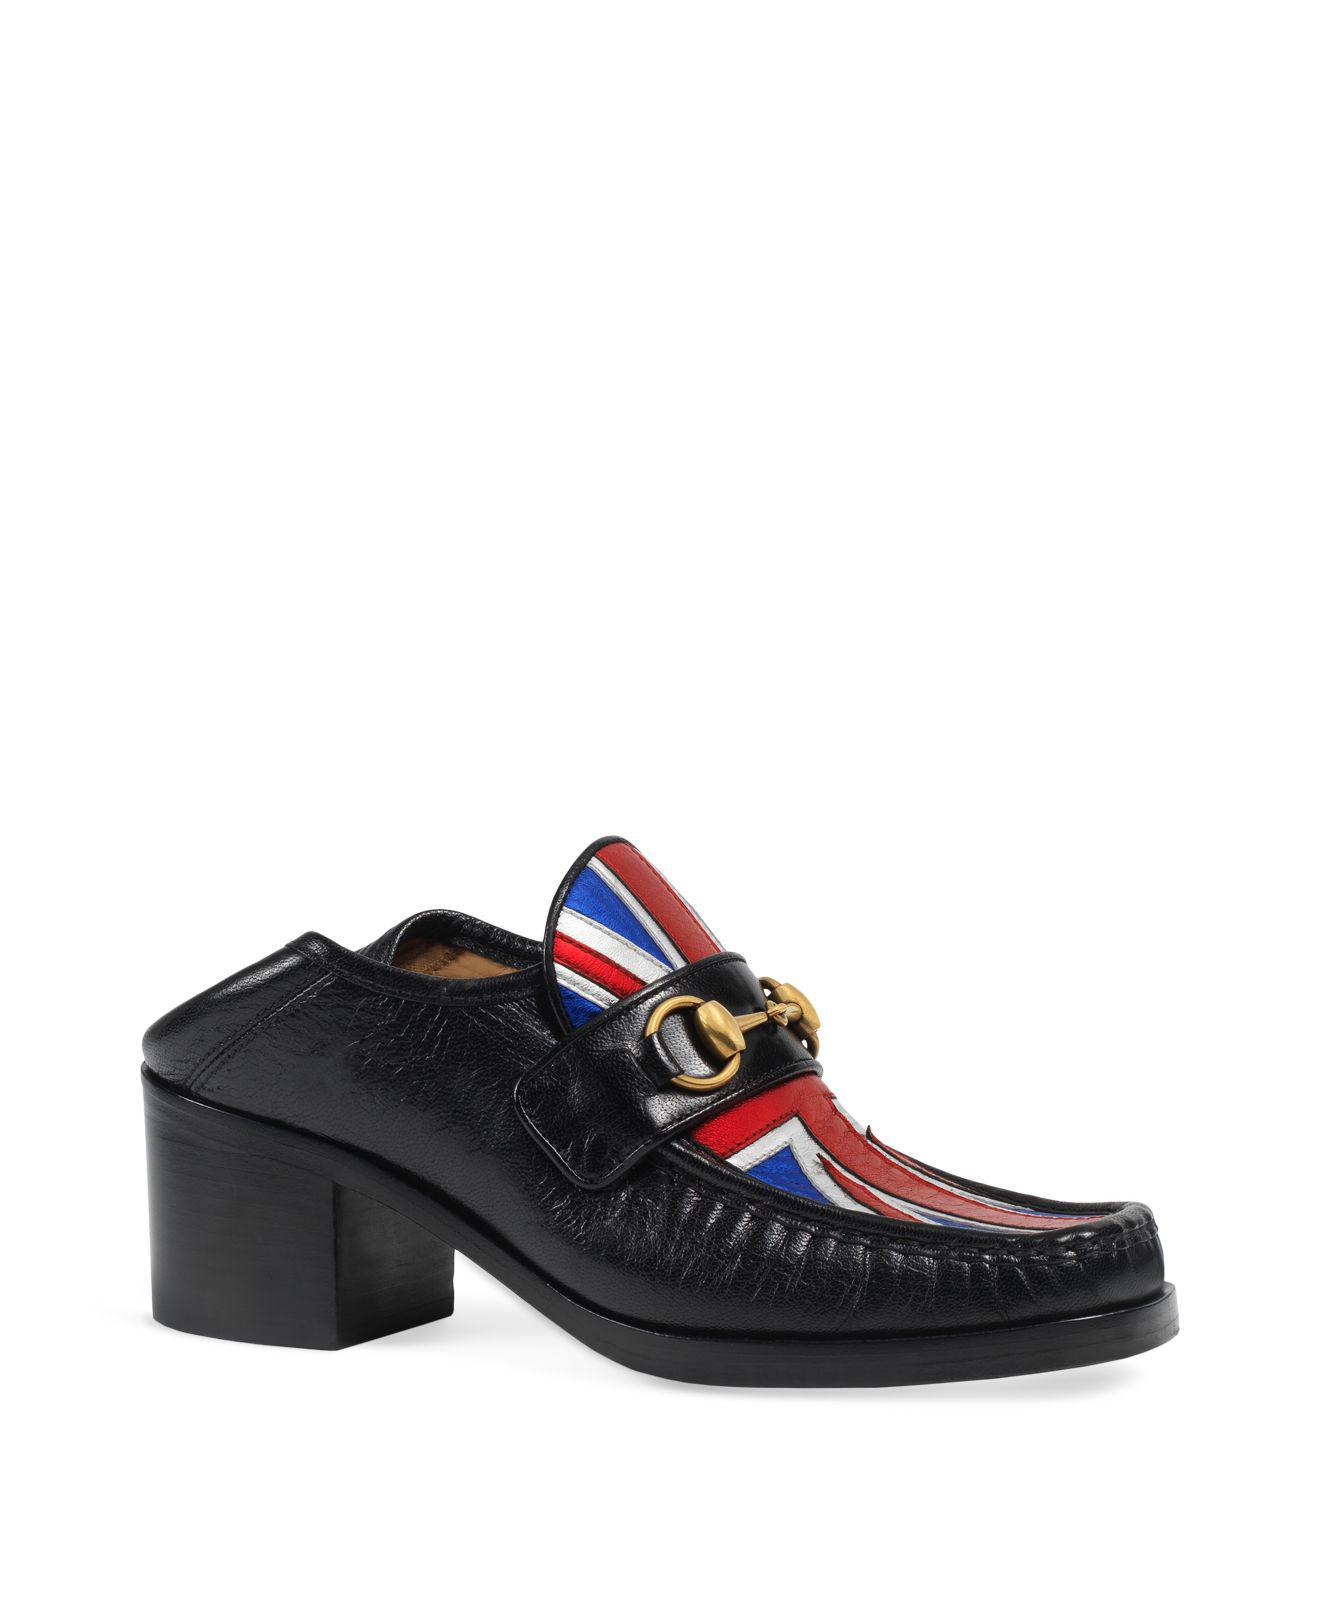 d42837108e5 Lyst - Gucci Women s Vegas Leather Mid Heel Loafers in Black